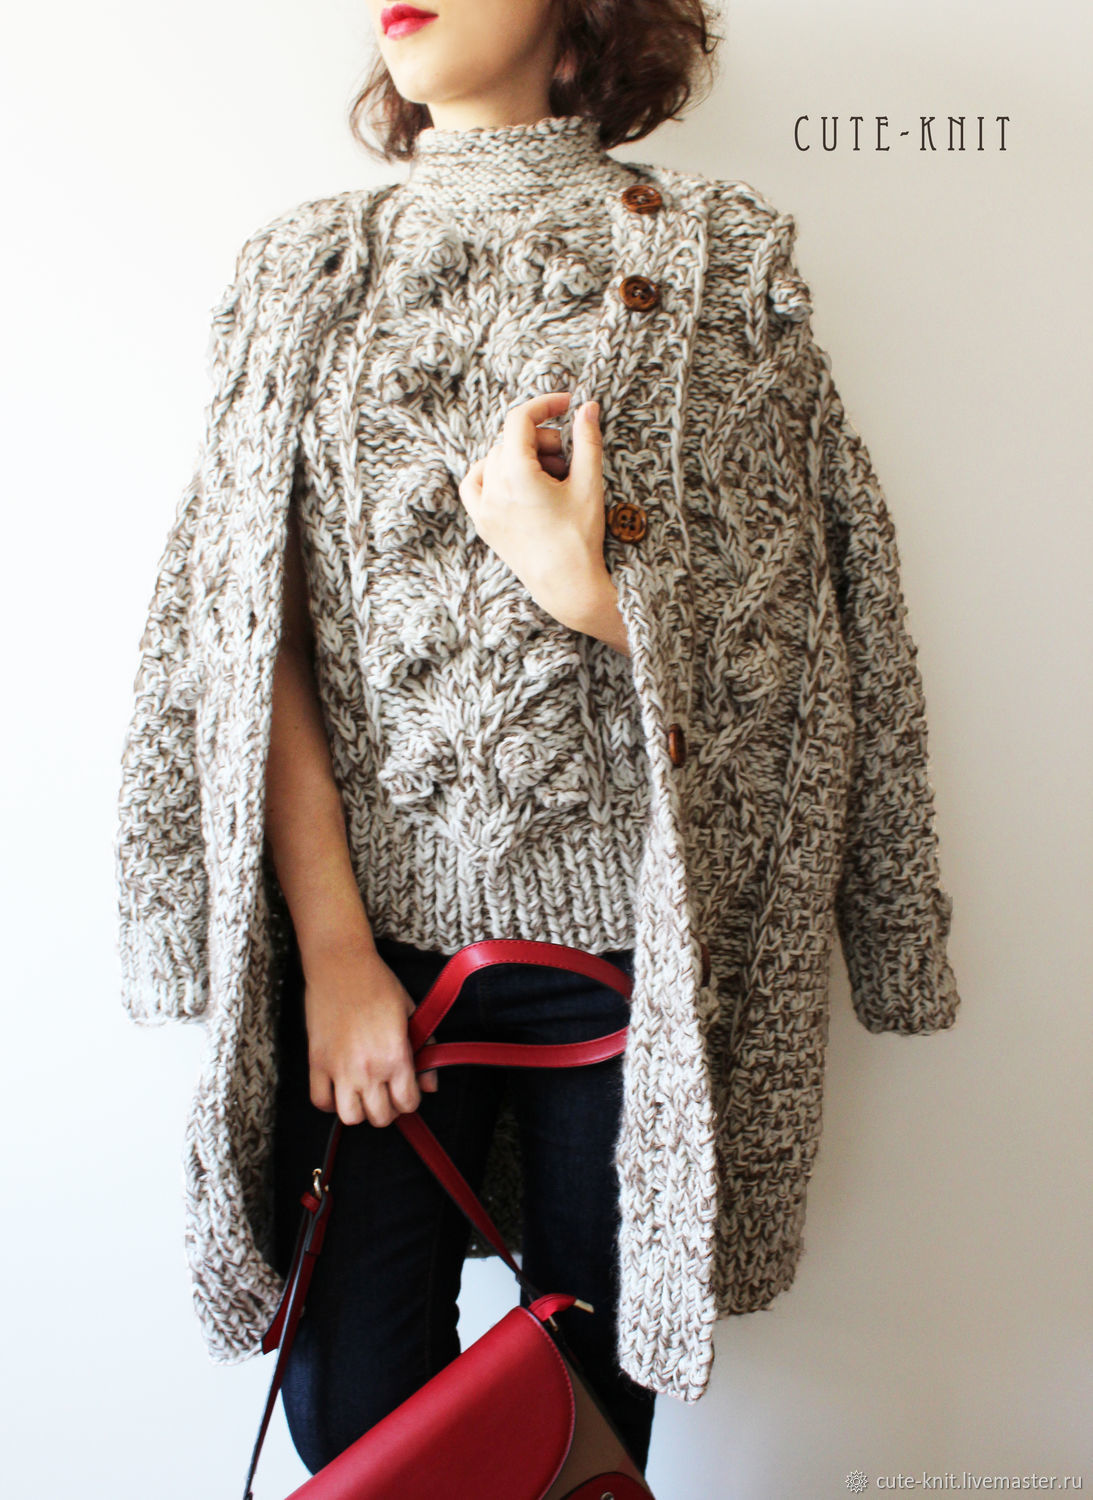 To better visualize the model, click on the photo CUTE-KNIT NAT Onipchenko Fair masters to Buy cardigan for women